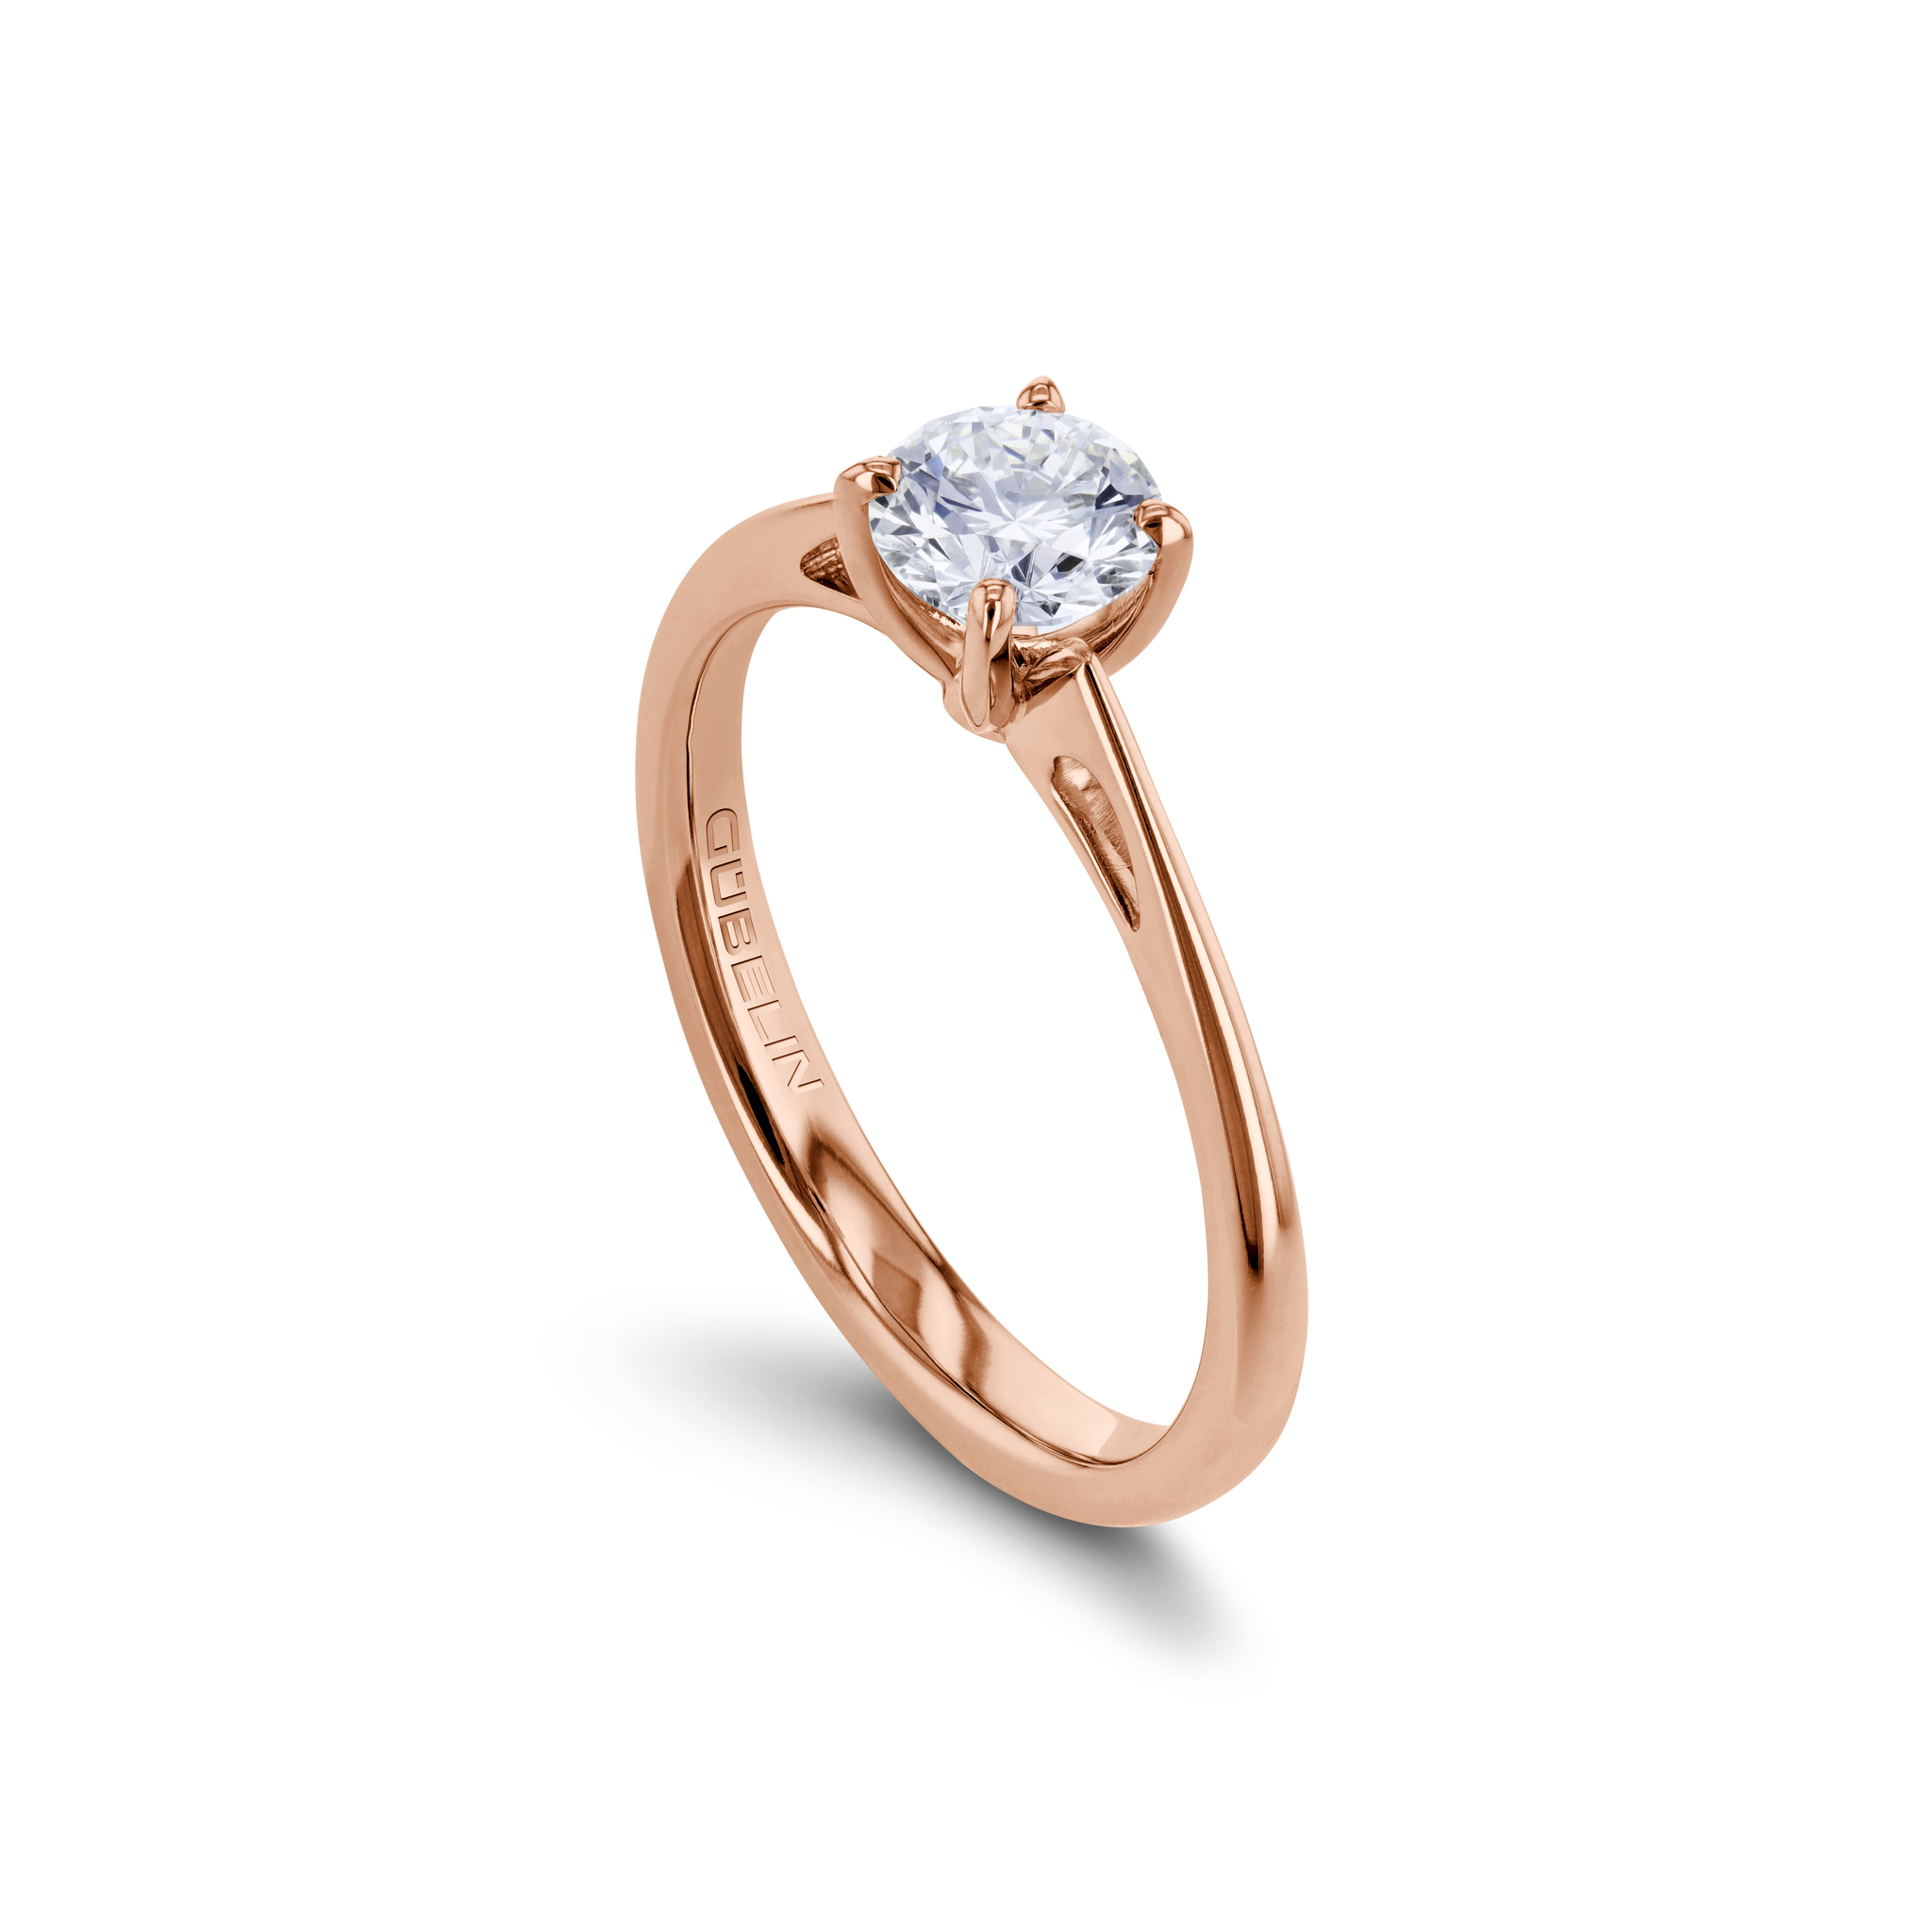 Solitaire ring with diamond